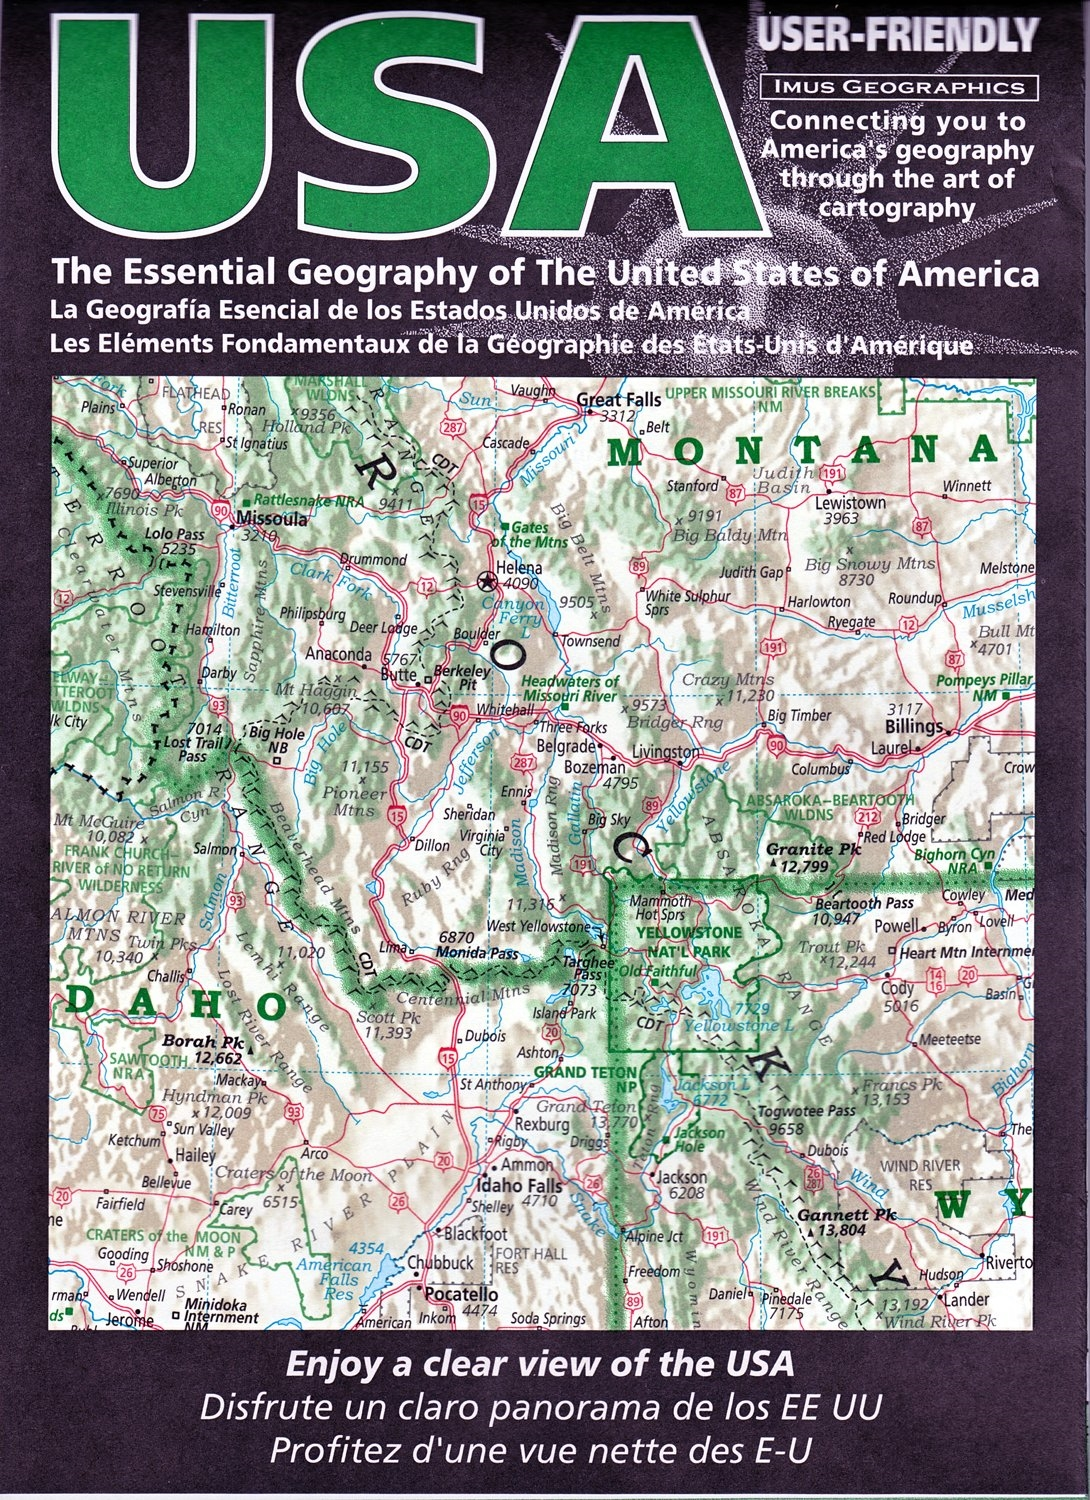 The Essential Geography of the USA road and travel map